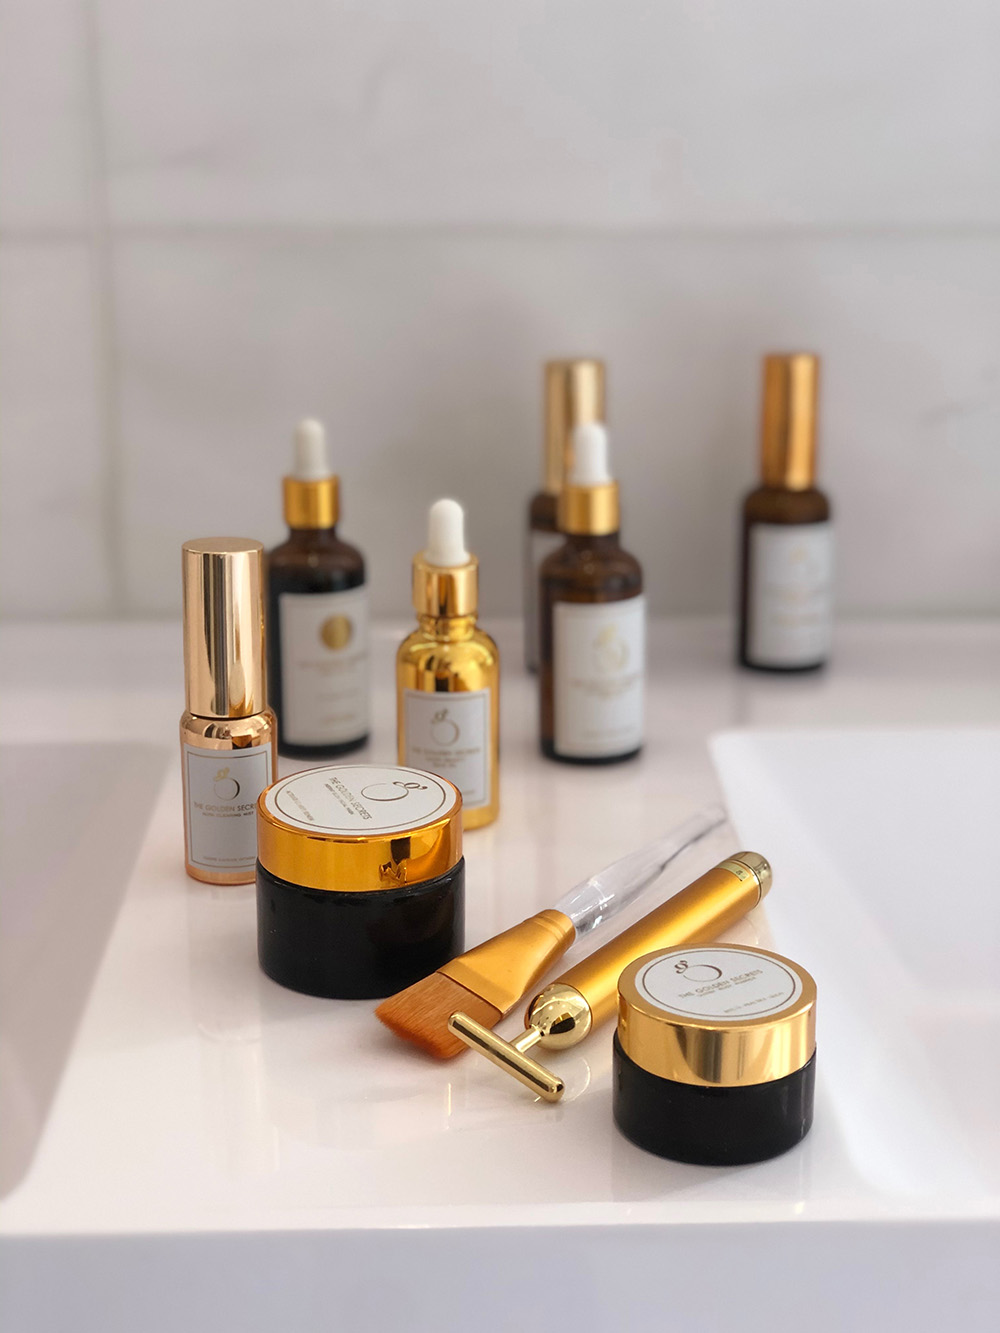 The Golden Secrets products